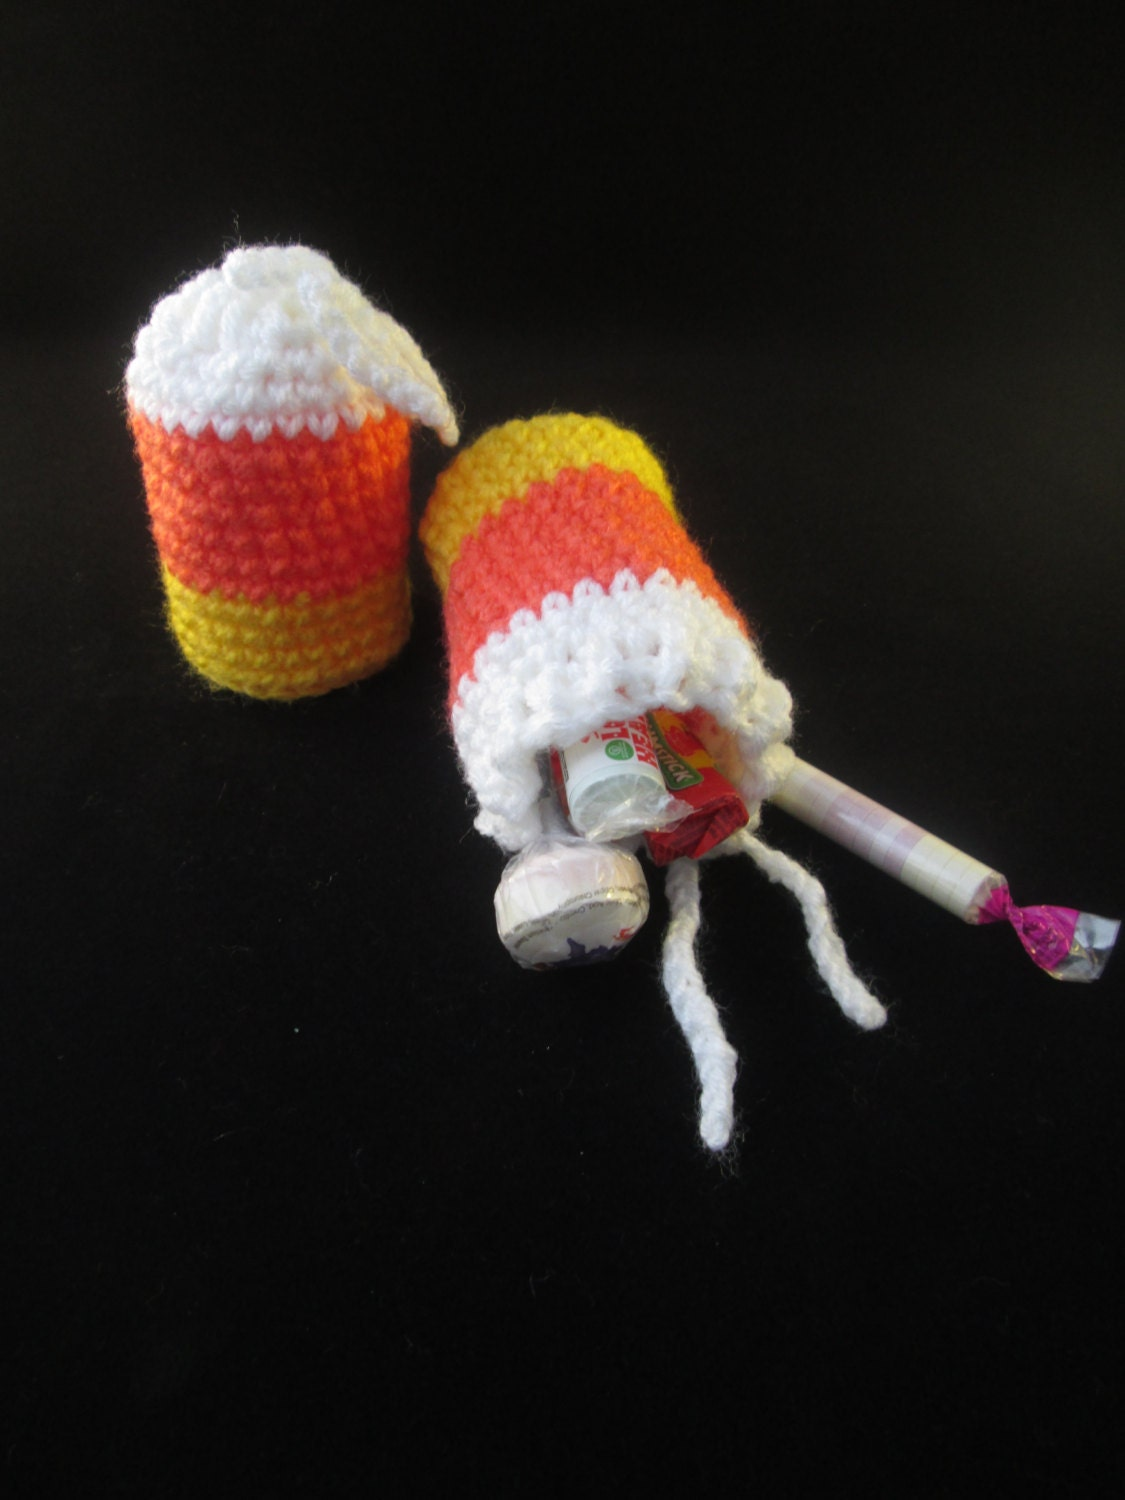 Halloween Candy Corn Handmade Crocheted Party Bags  Halloween ... c58042437ae1